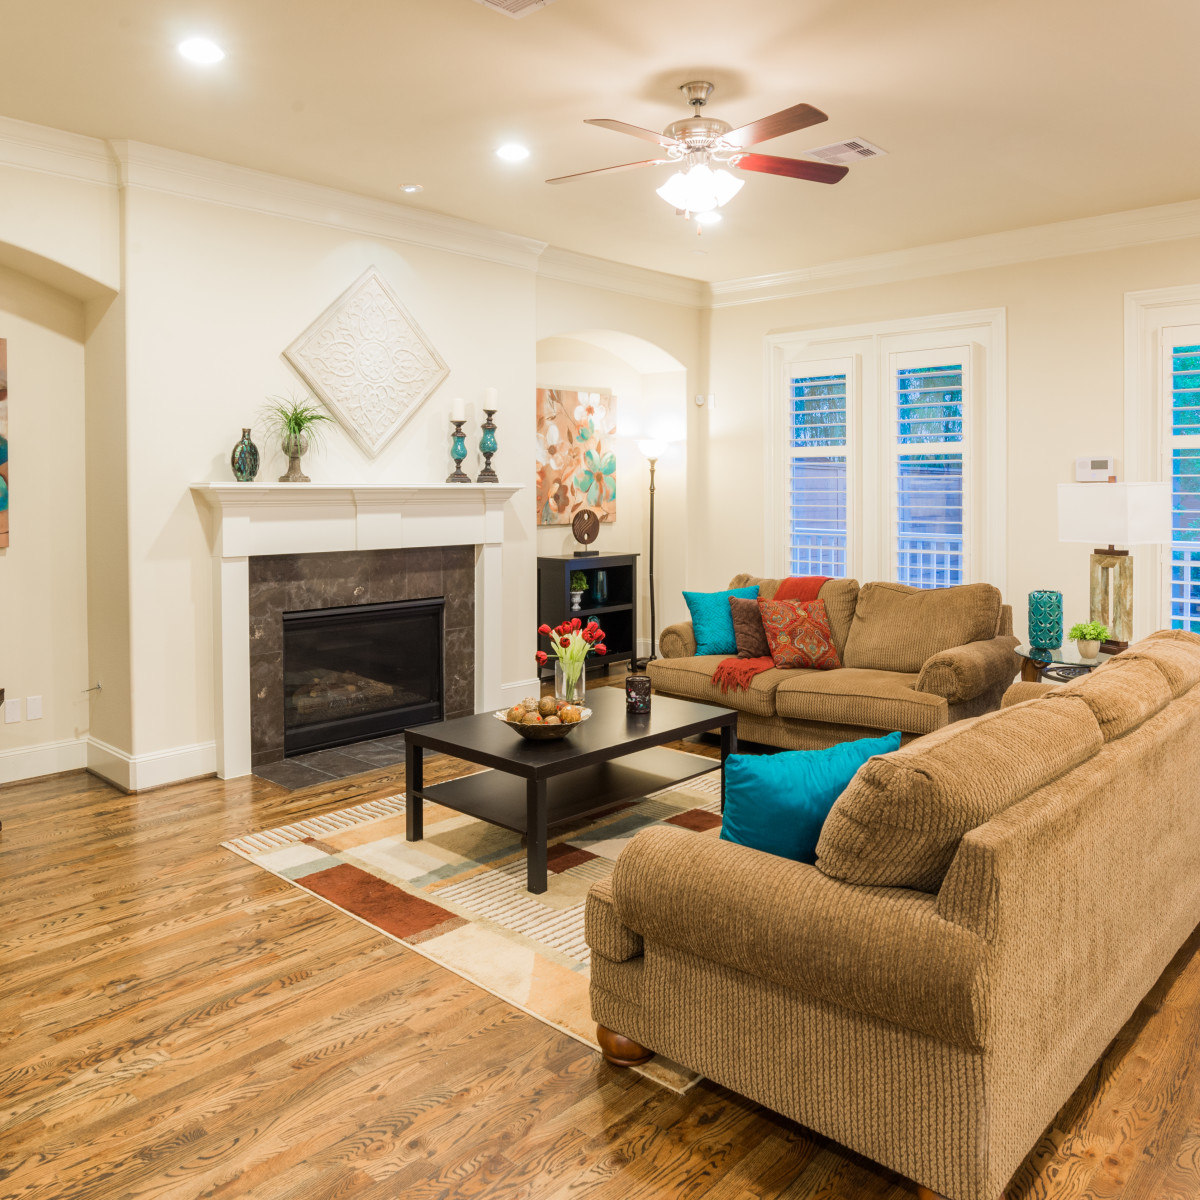 Houston, 1216 Bomar, June 2015, living room